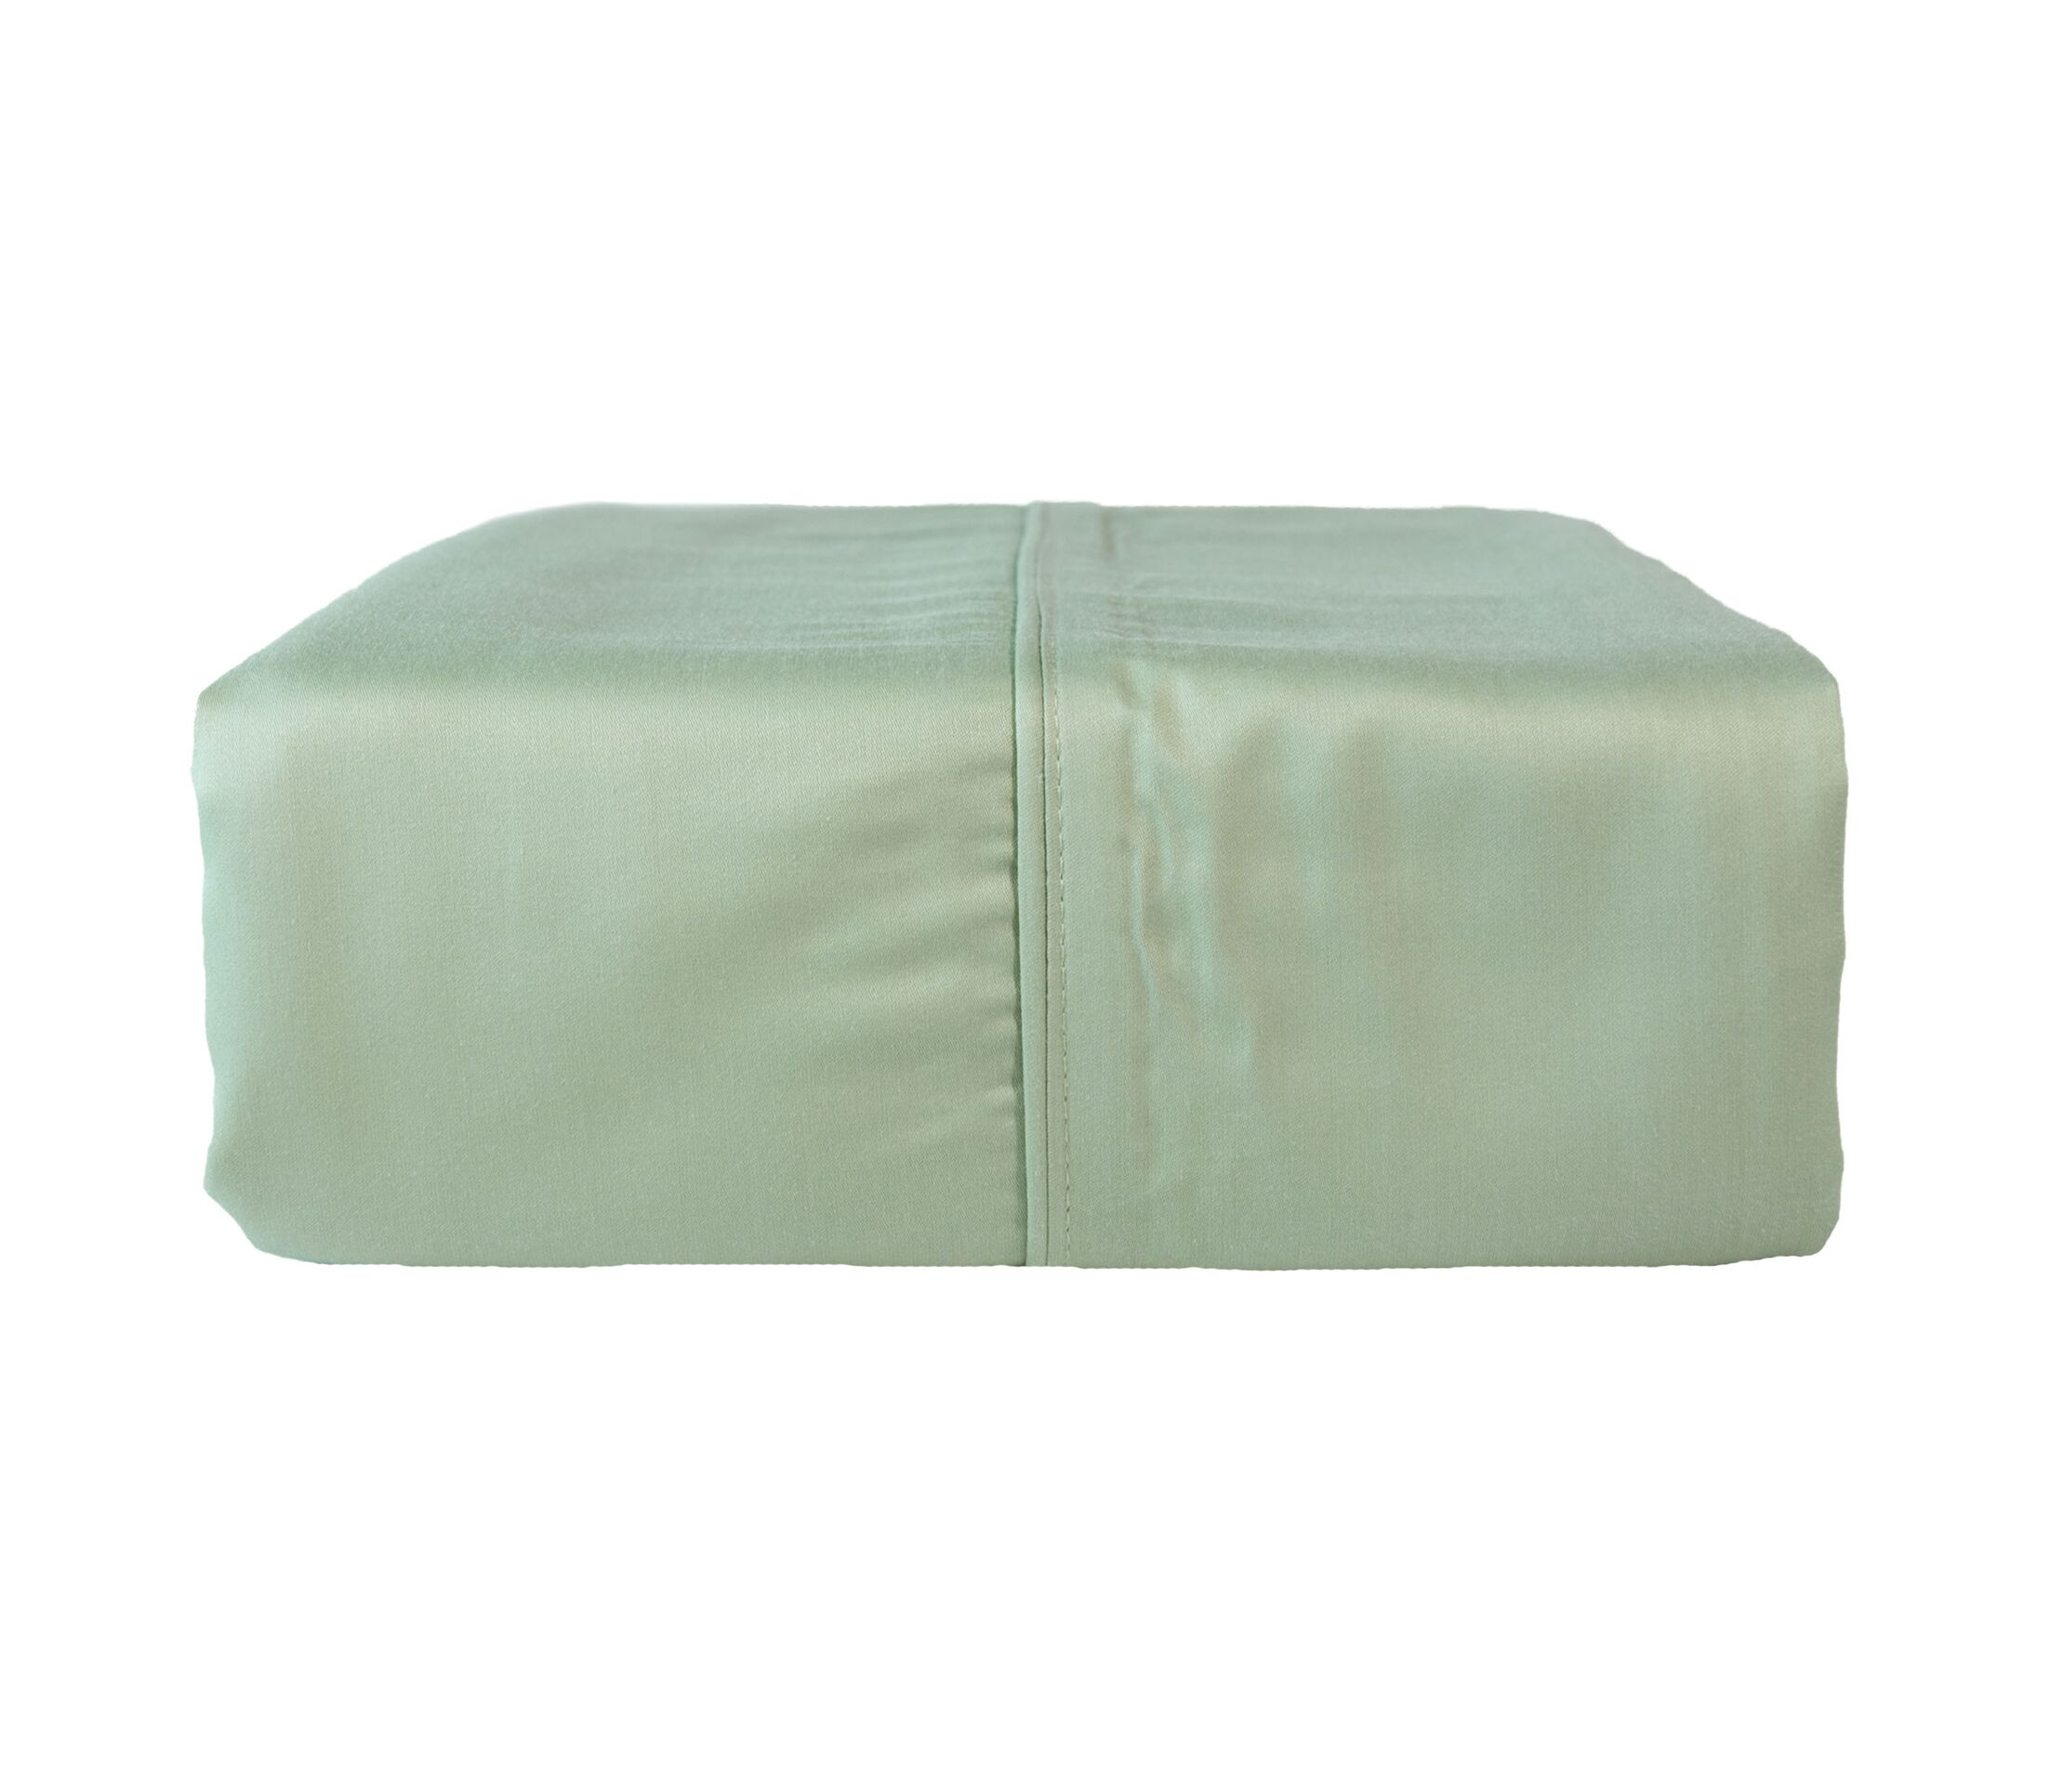 300 Thread Count Sheet Set Size: King, Color: Eco Green (No Queen or King)